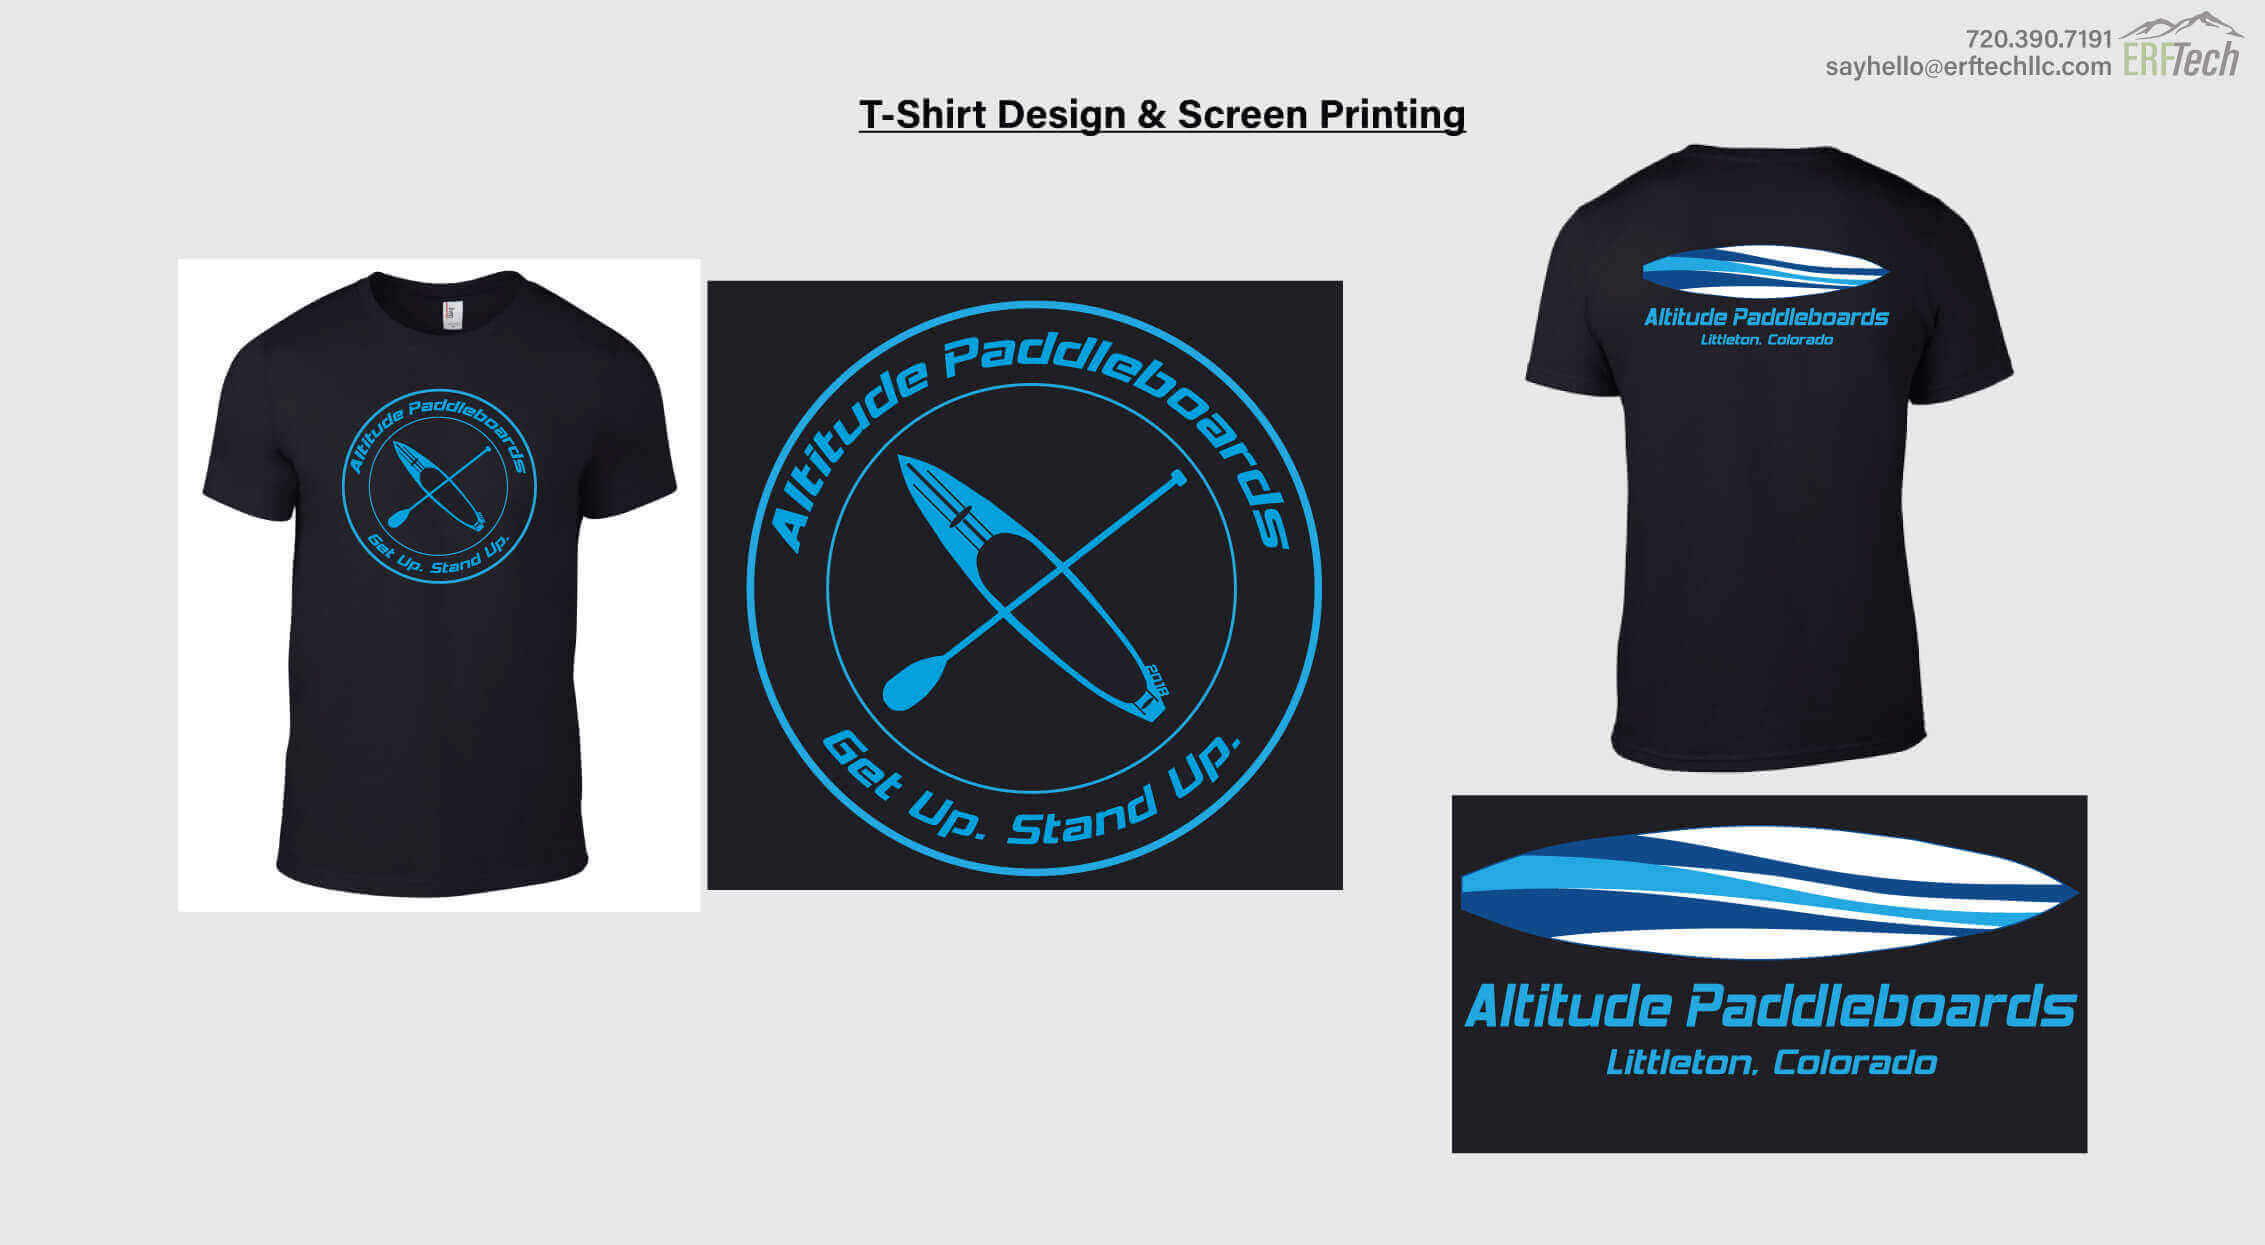 Shirt Design & Print for Altitude Paddleboard in Littleton, CO